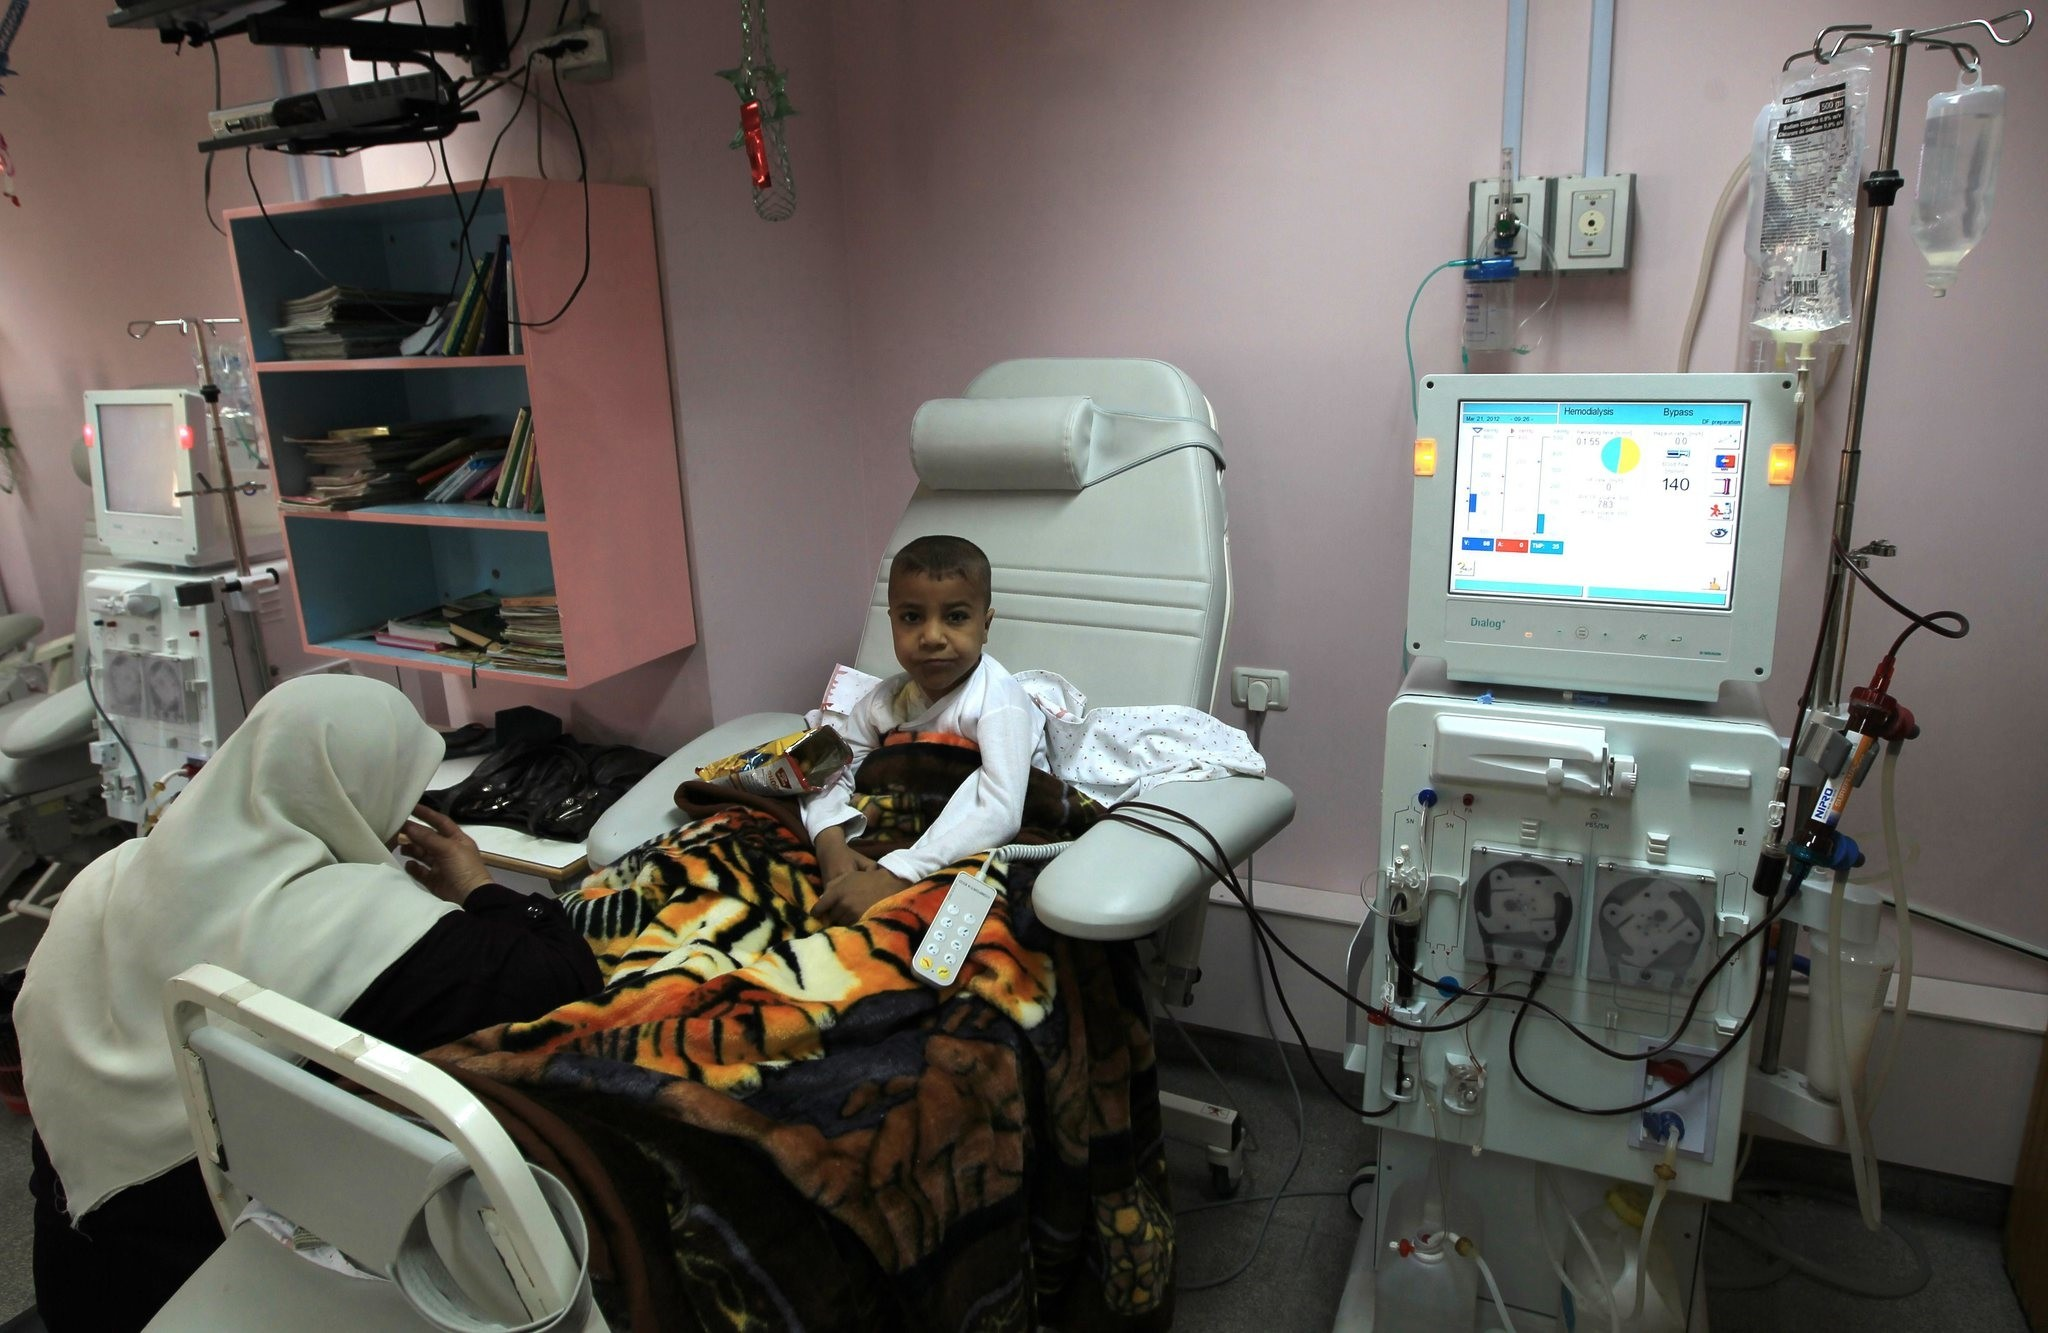 A Palestinian boy receives kidney dialysis at a hospital in Gaza City on March 21, 2012. (AFP Photo)